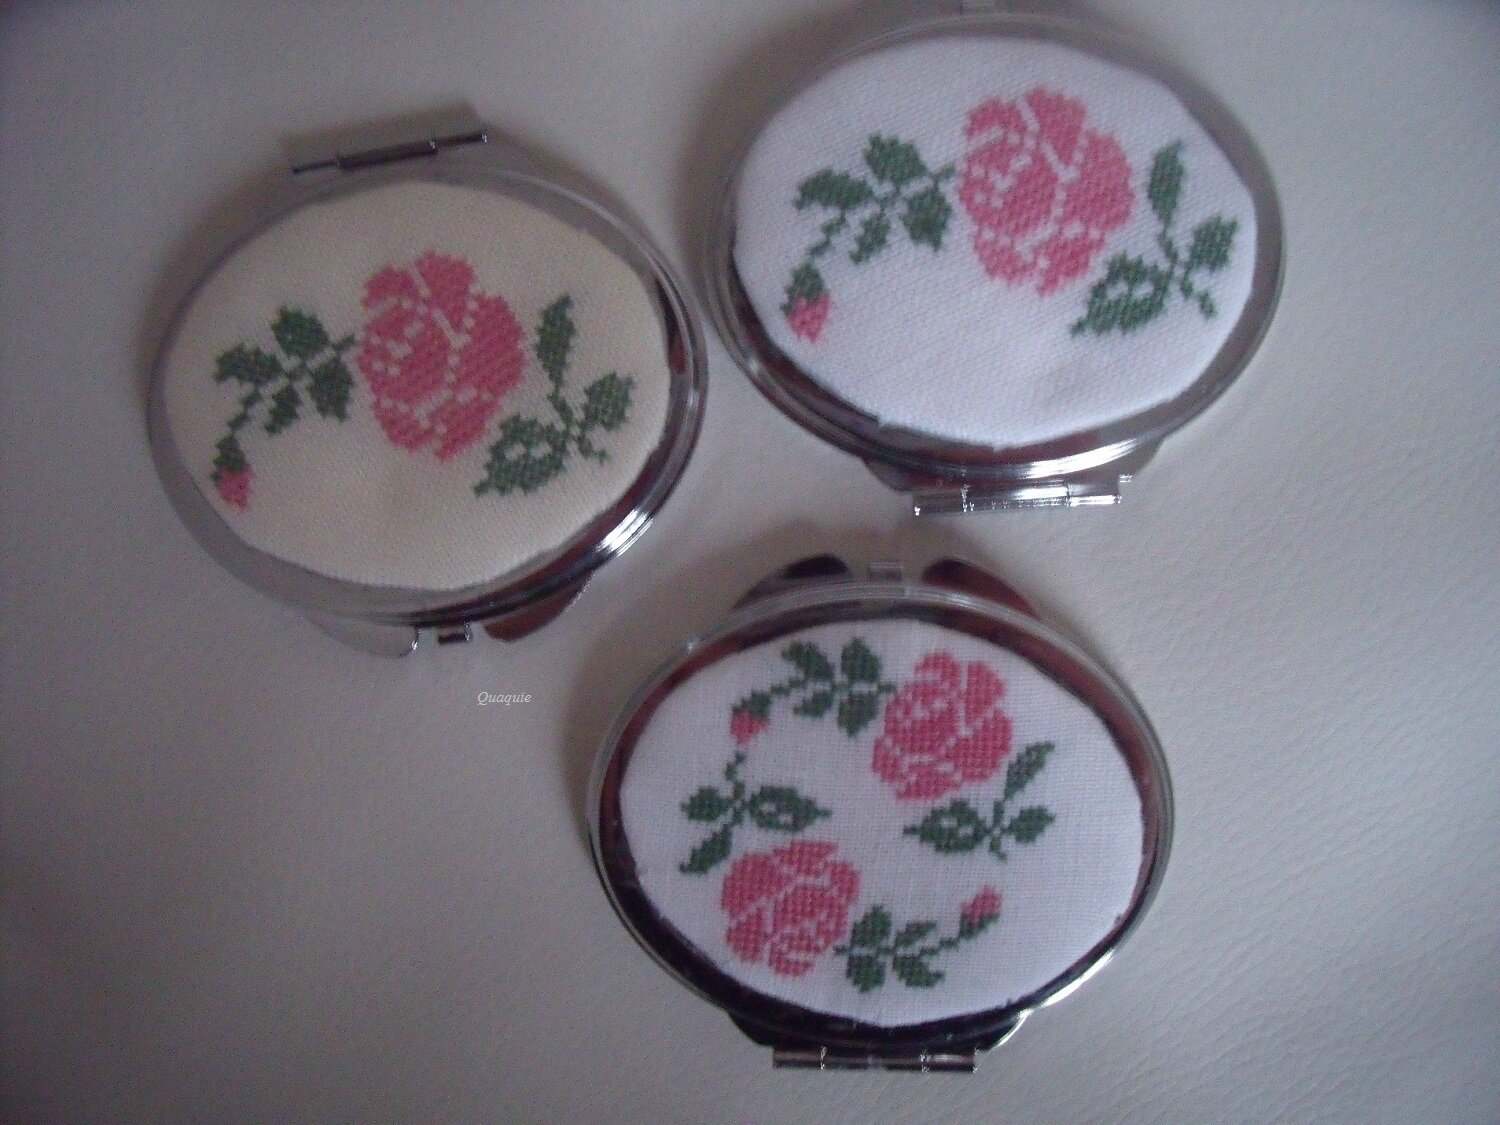 petts miroirs aux roses